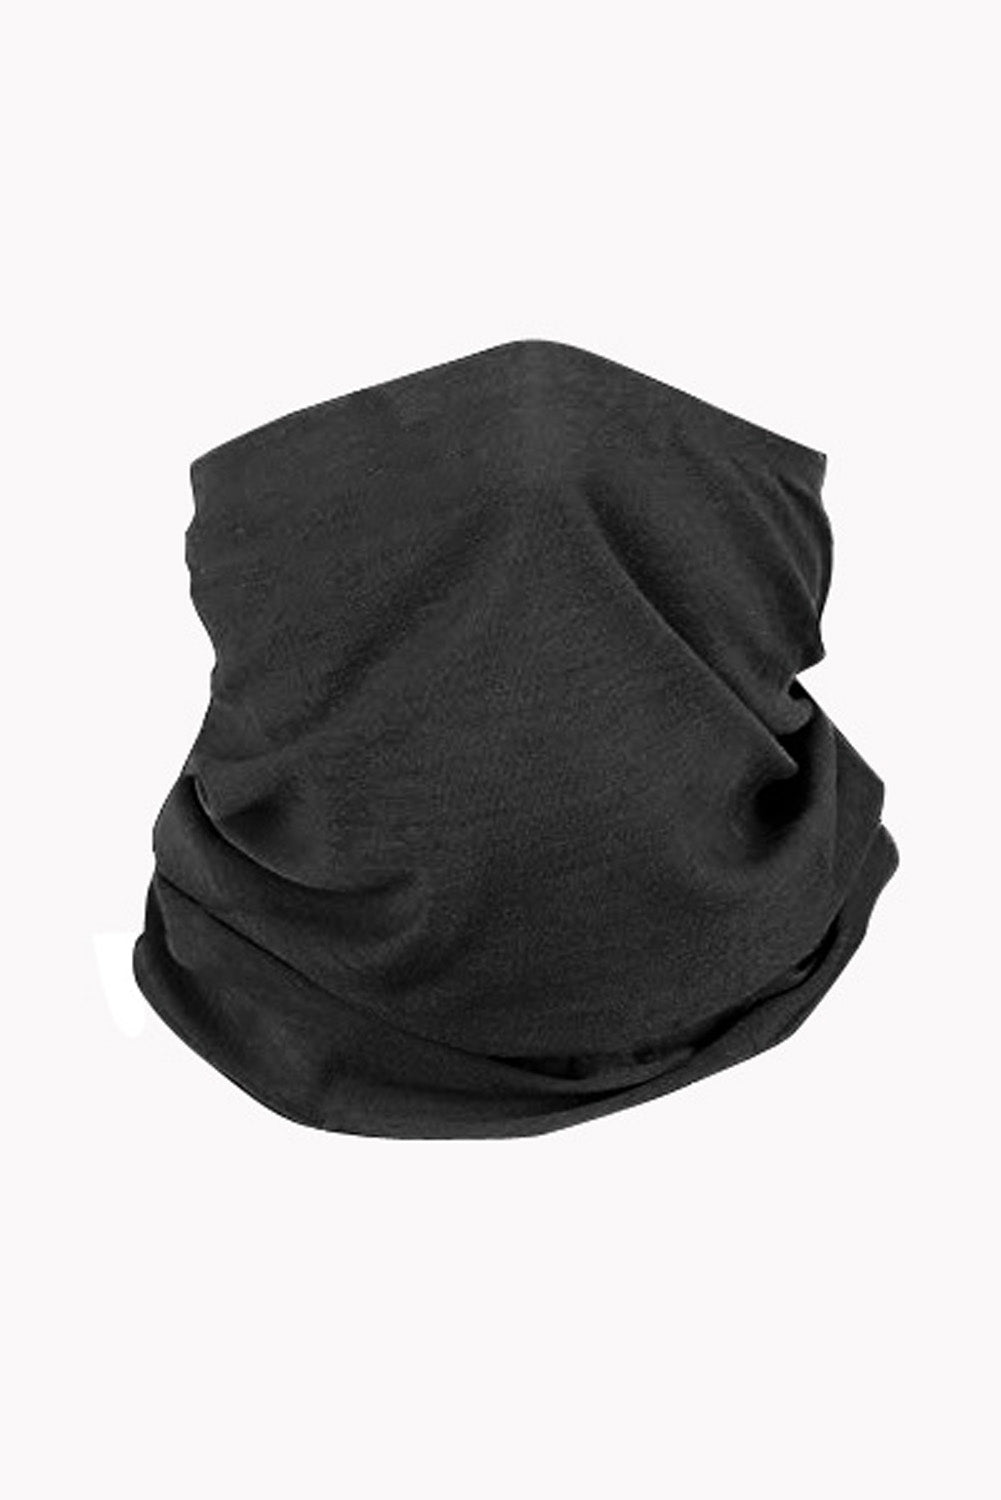 Black Outdoor Cycling Climbing Face Bandana Neck Gaiter Neck Gaiter Discount Designer Fashion Clothes Shoes Bags Women Men Kids Children Black Owned Business